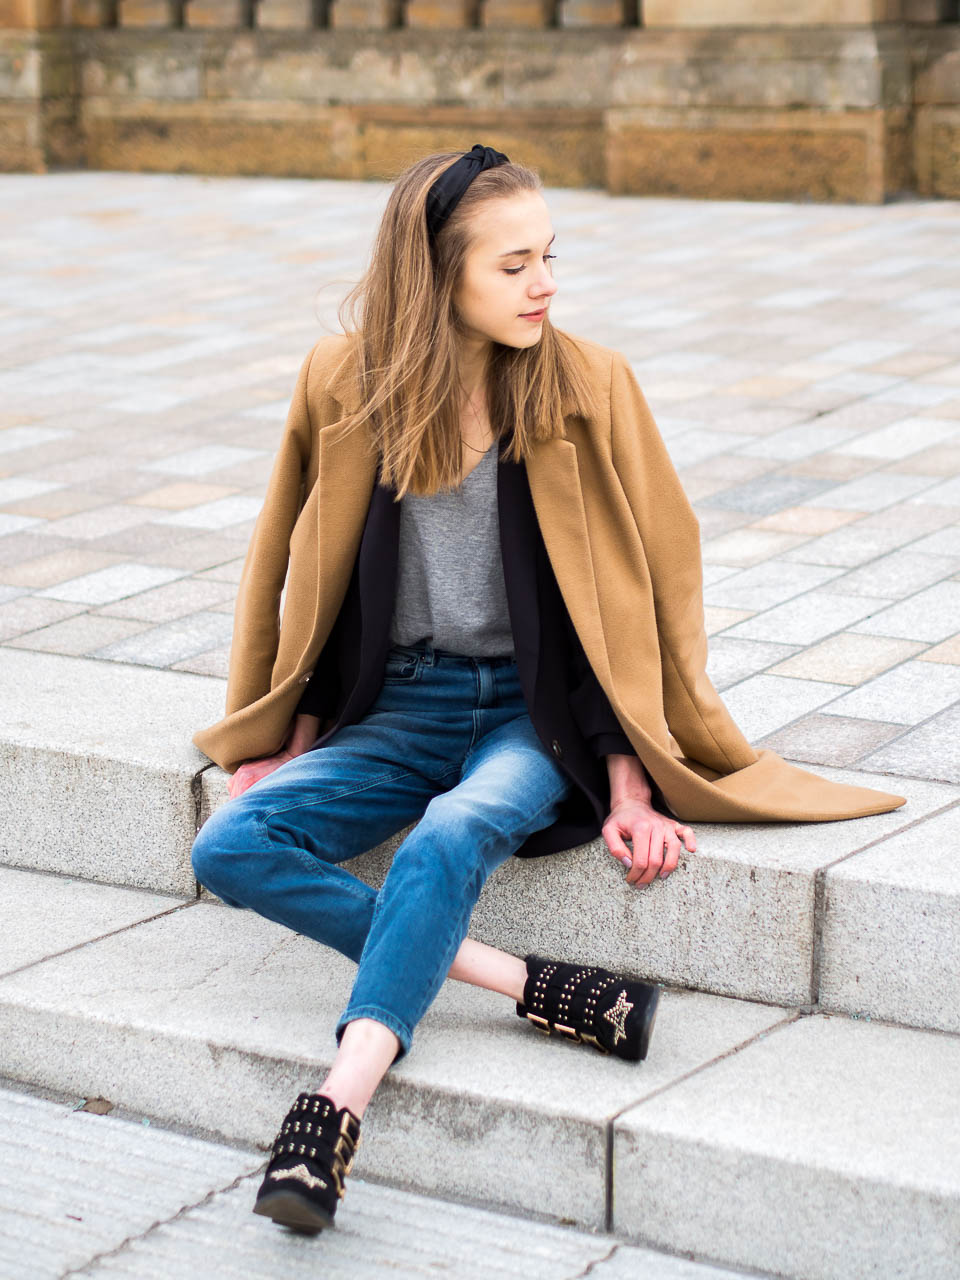 glasgow-fashion-blogger-winter-to-spring-outfit-inspiration